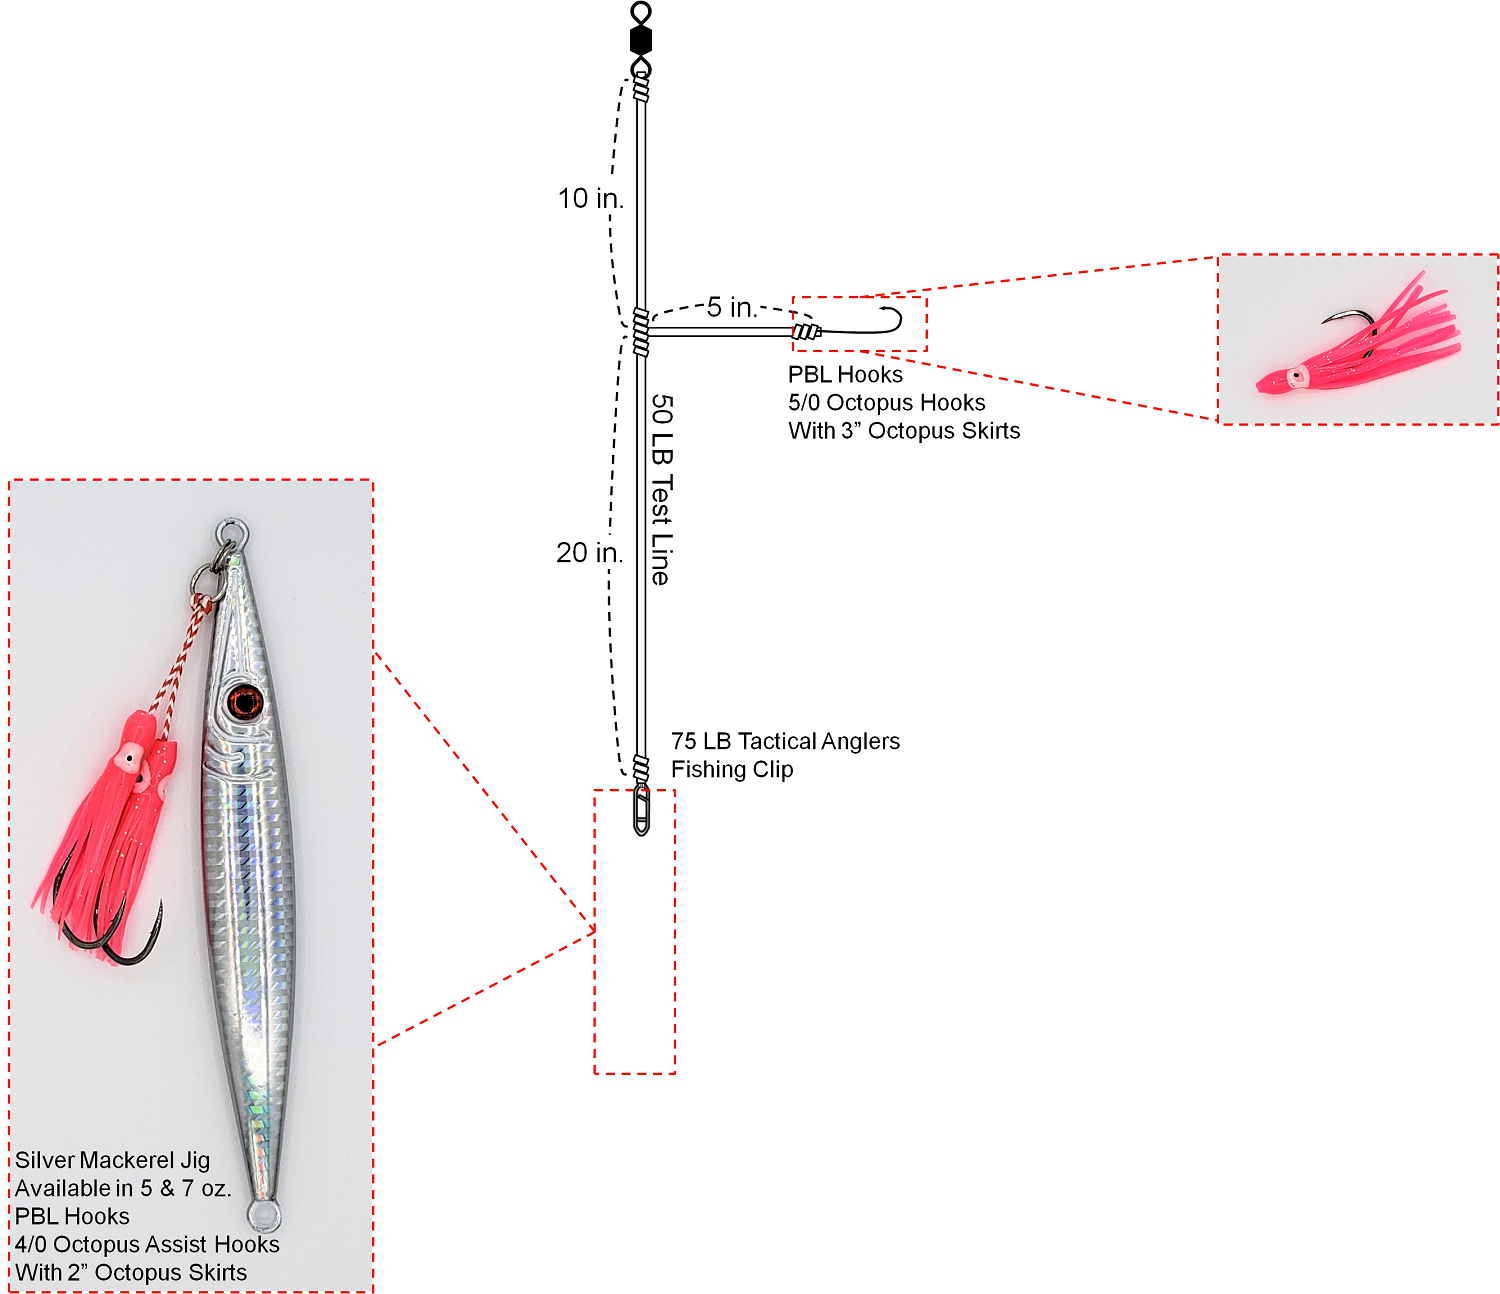 silver-mackerel-jig-rig-diagram-final-1500pxw.png